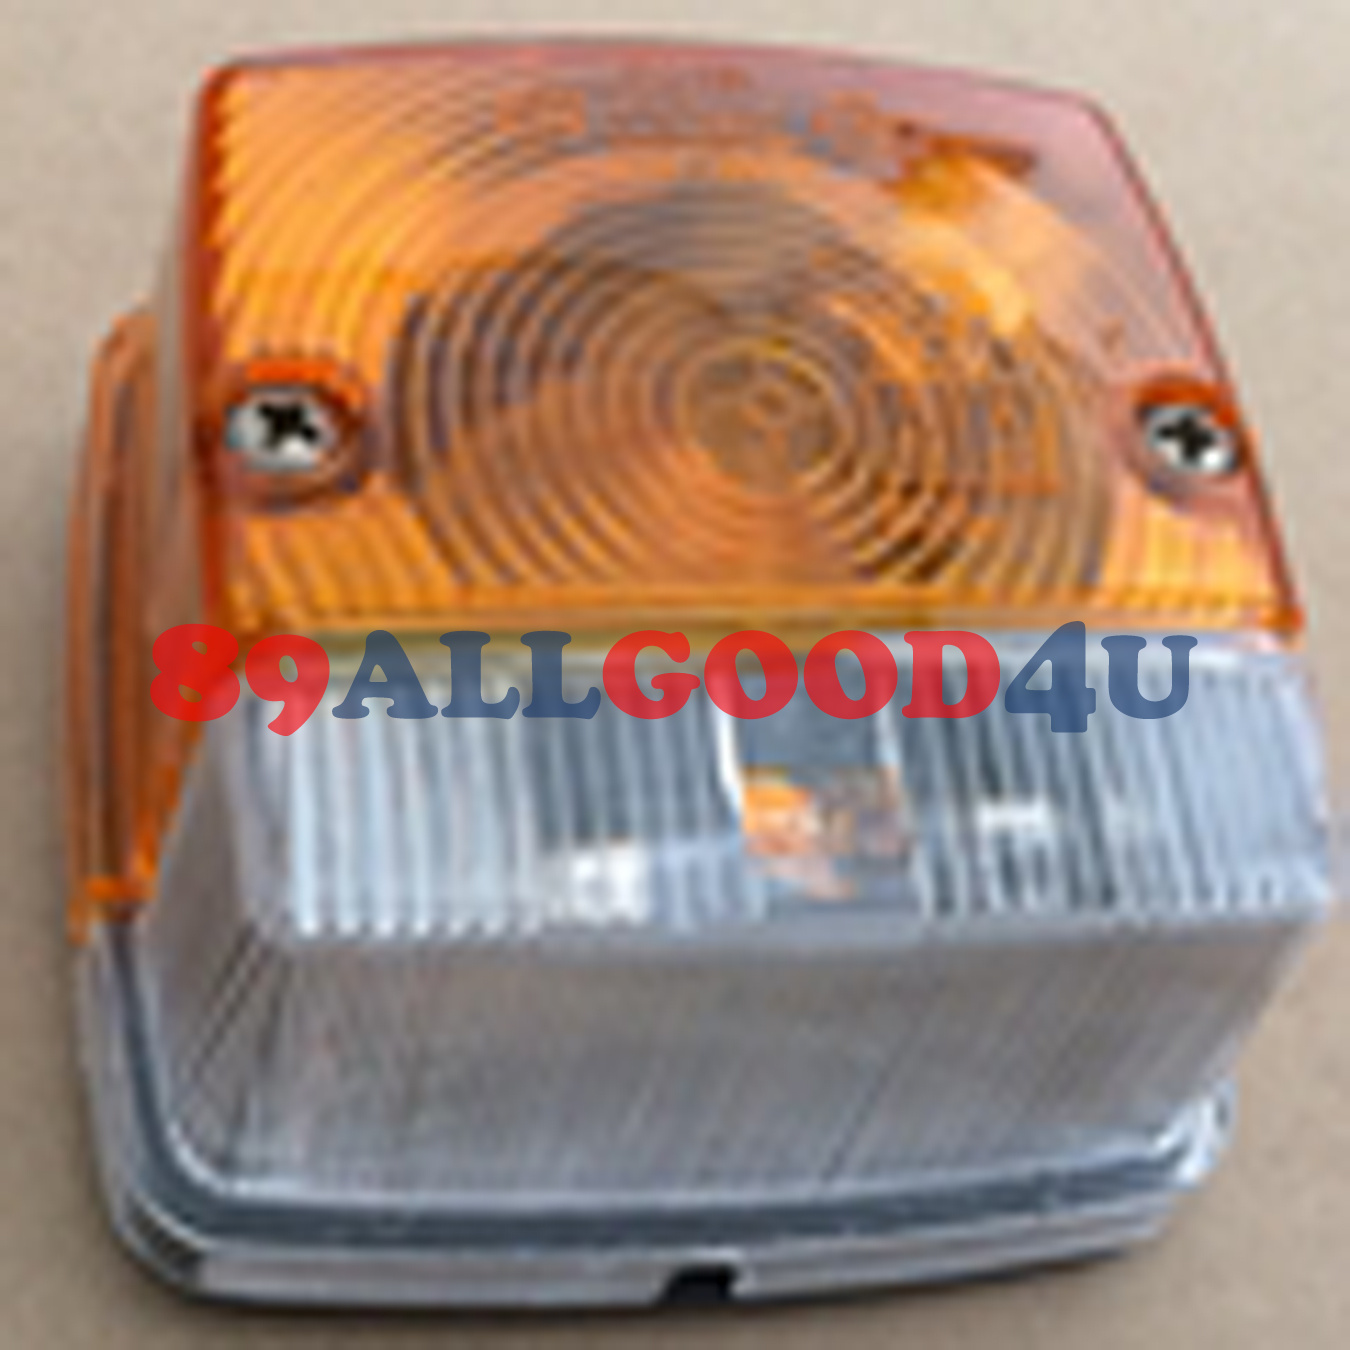 Details about Toolcat Turn Light 6665727 For Bobcat 5600 5610 450 453 463  553 653